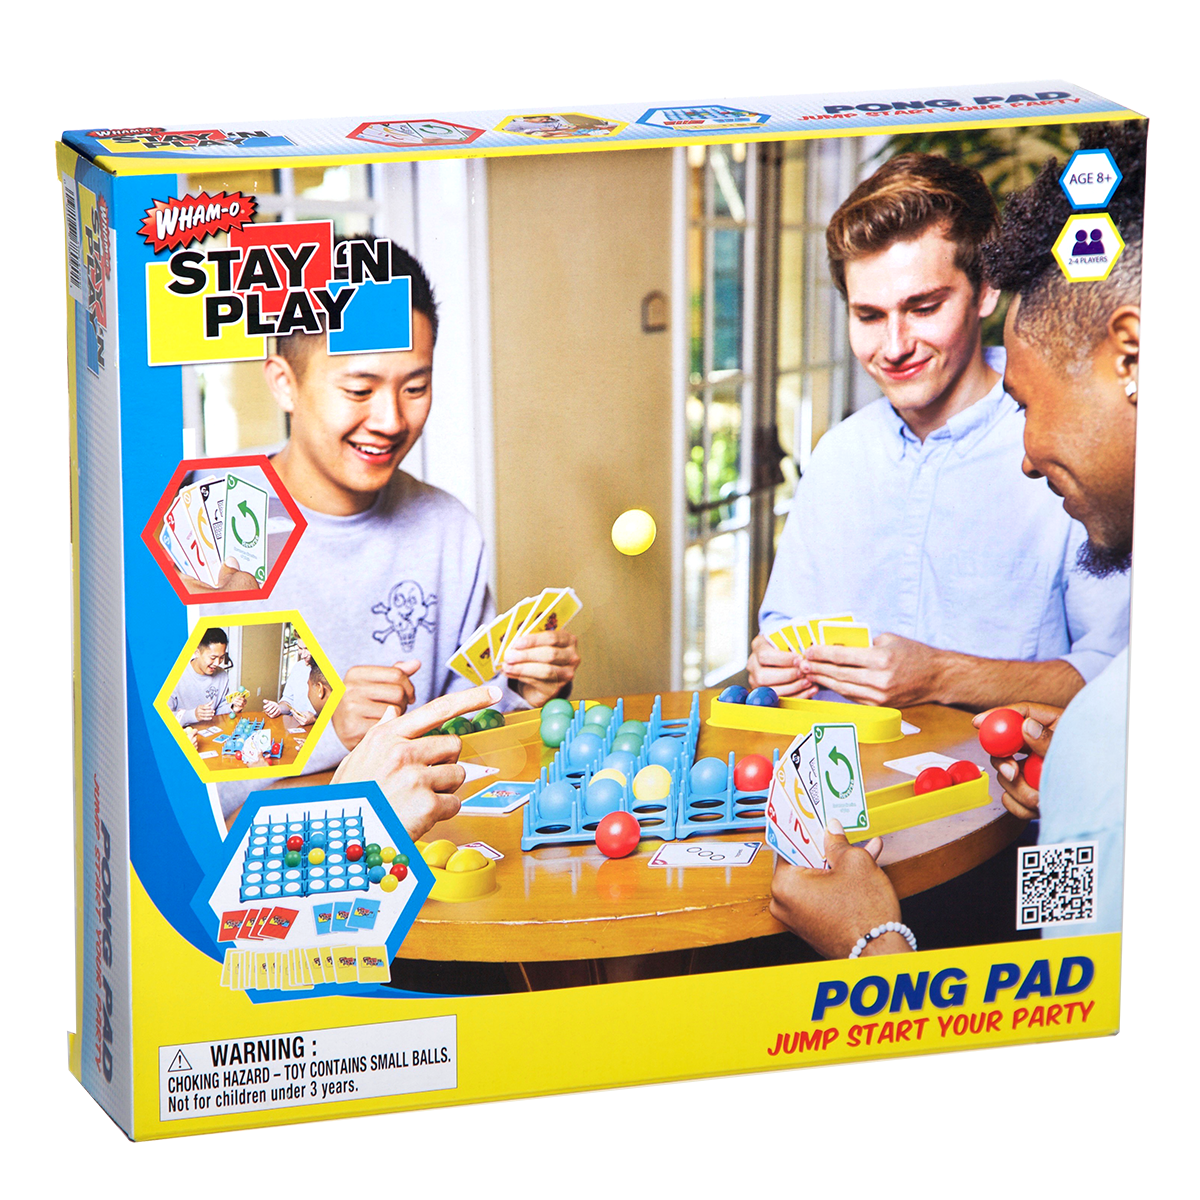 Wham-O Pong Pad - Stay 'N Play on sale now and part of the Pong Pad - Stay 'N Play of products.